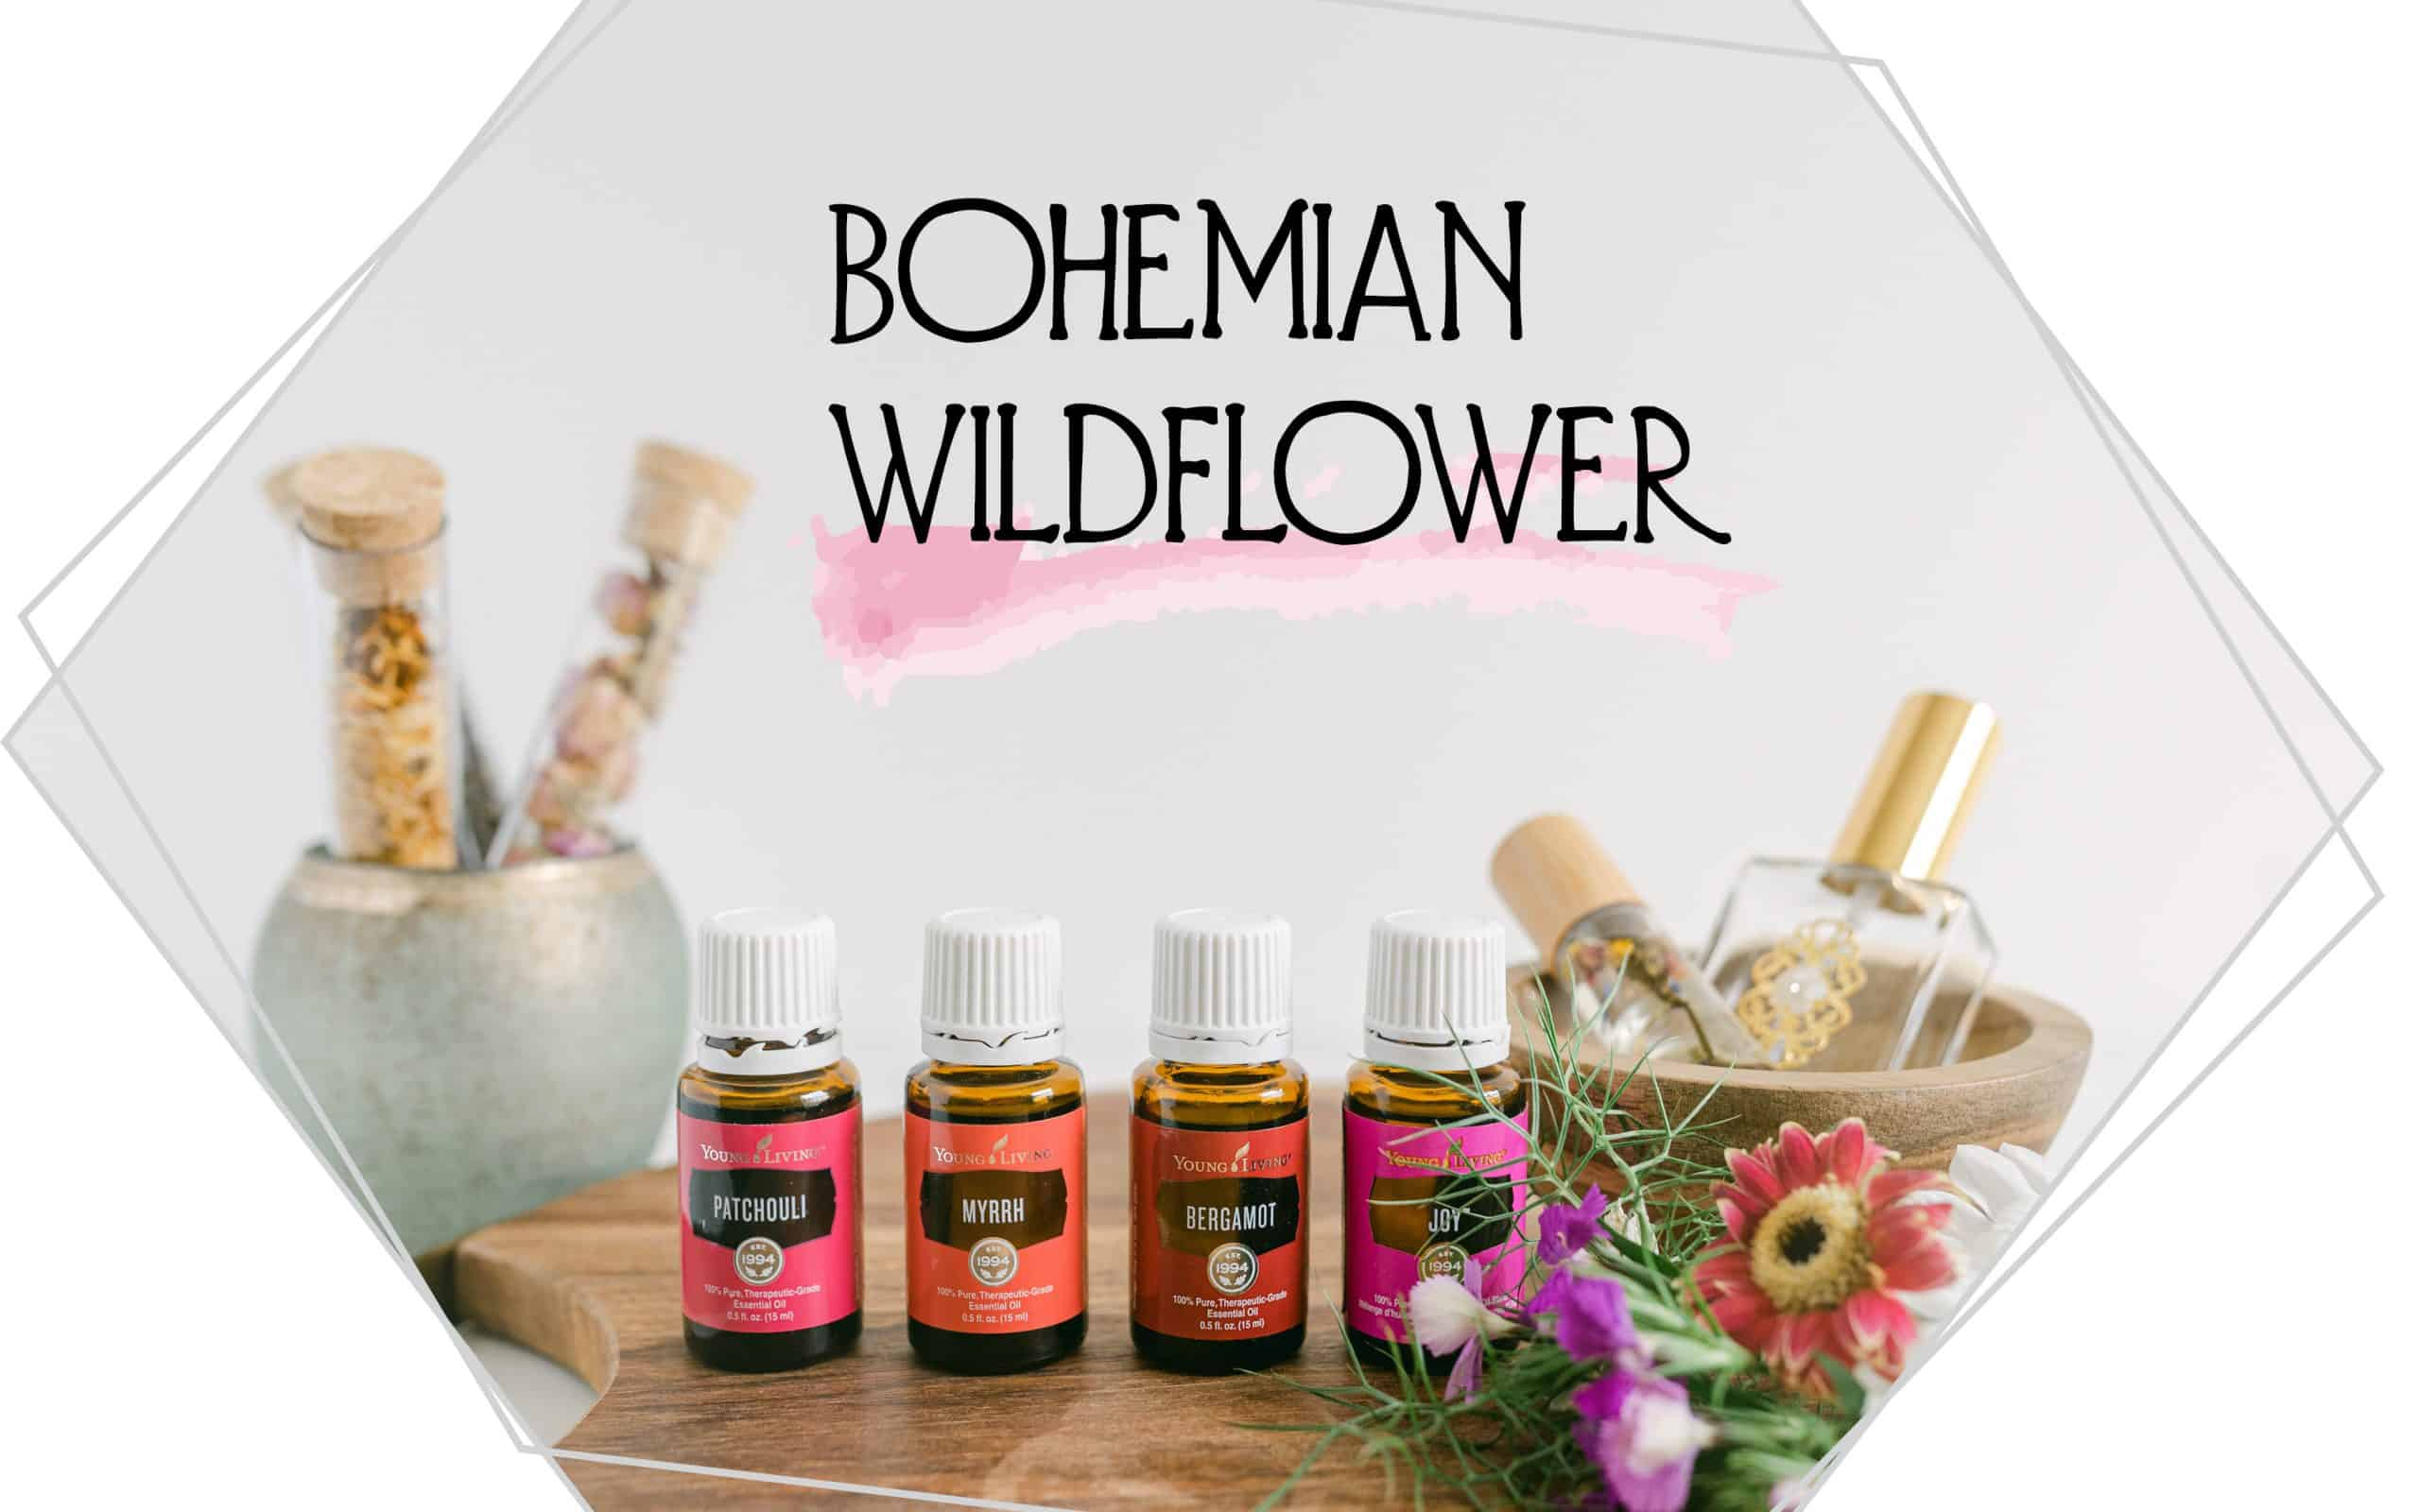 Bohemian Wildflower with essential oils.